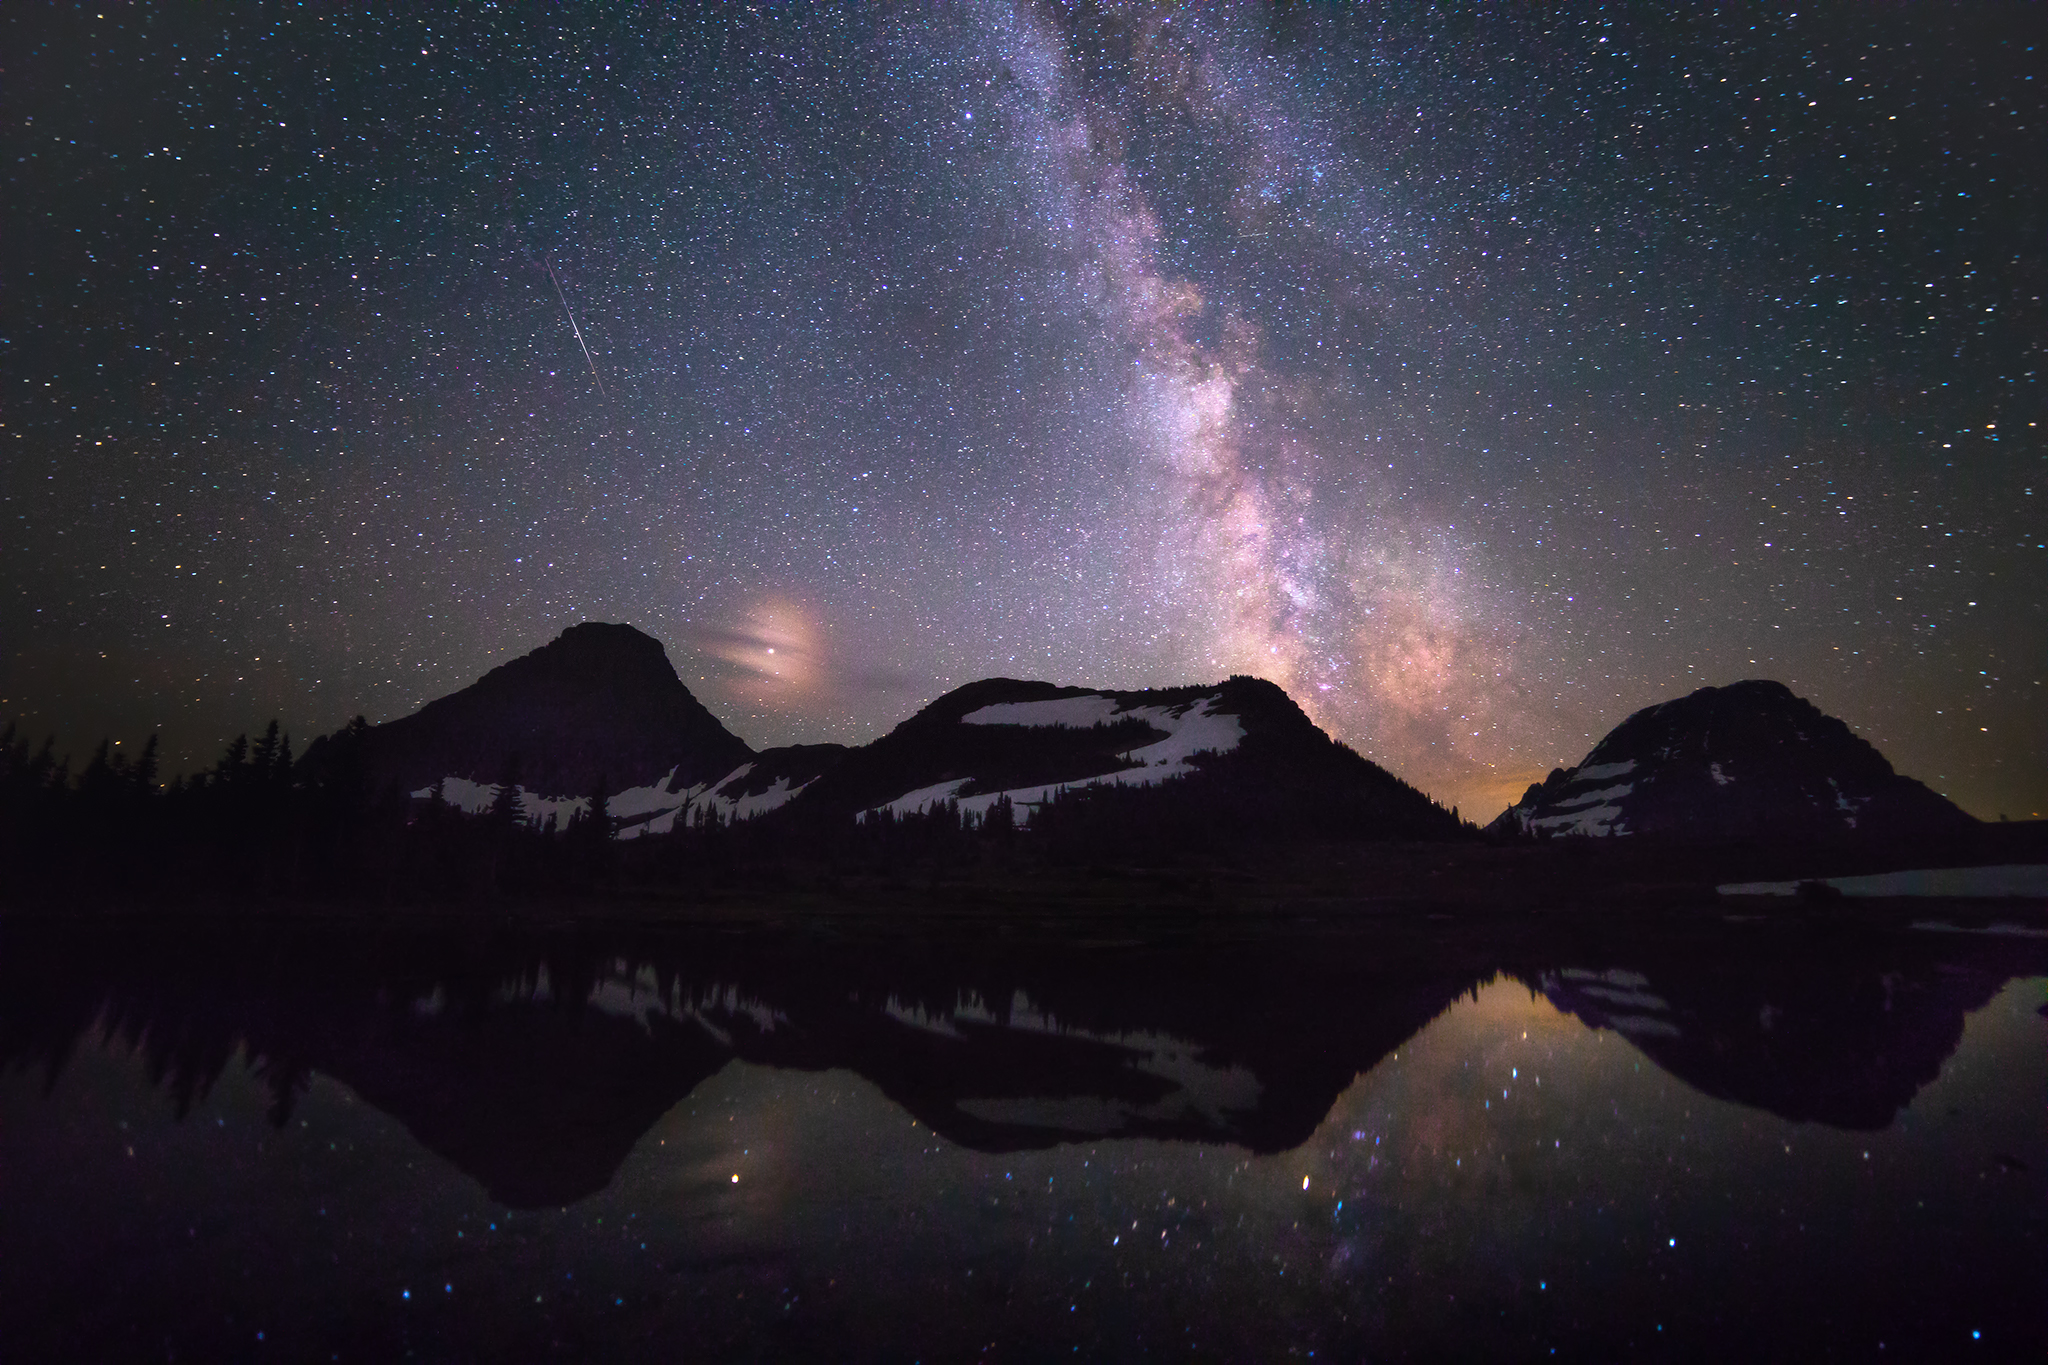 The night sky seen above Glacier National Park in Montana, USA. In addition to the Milky Way, Mars can be seen near the peak of the mountain on the left. A single shooting star is visible as well in the sky above the left mountain peak.